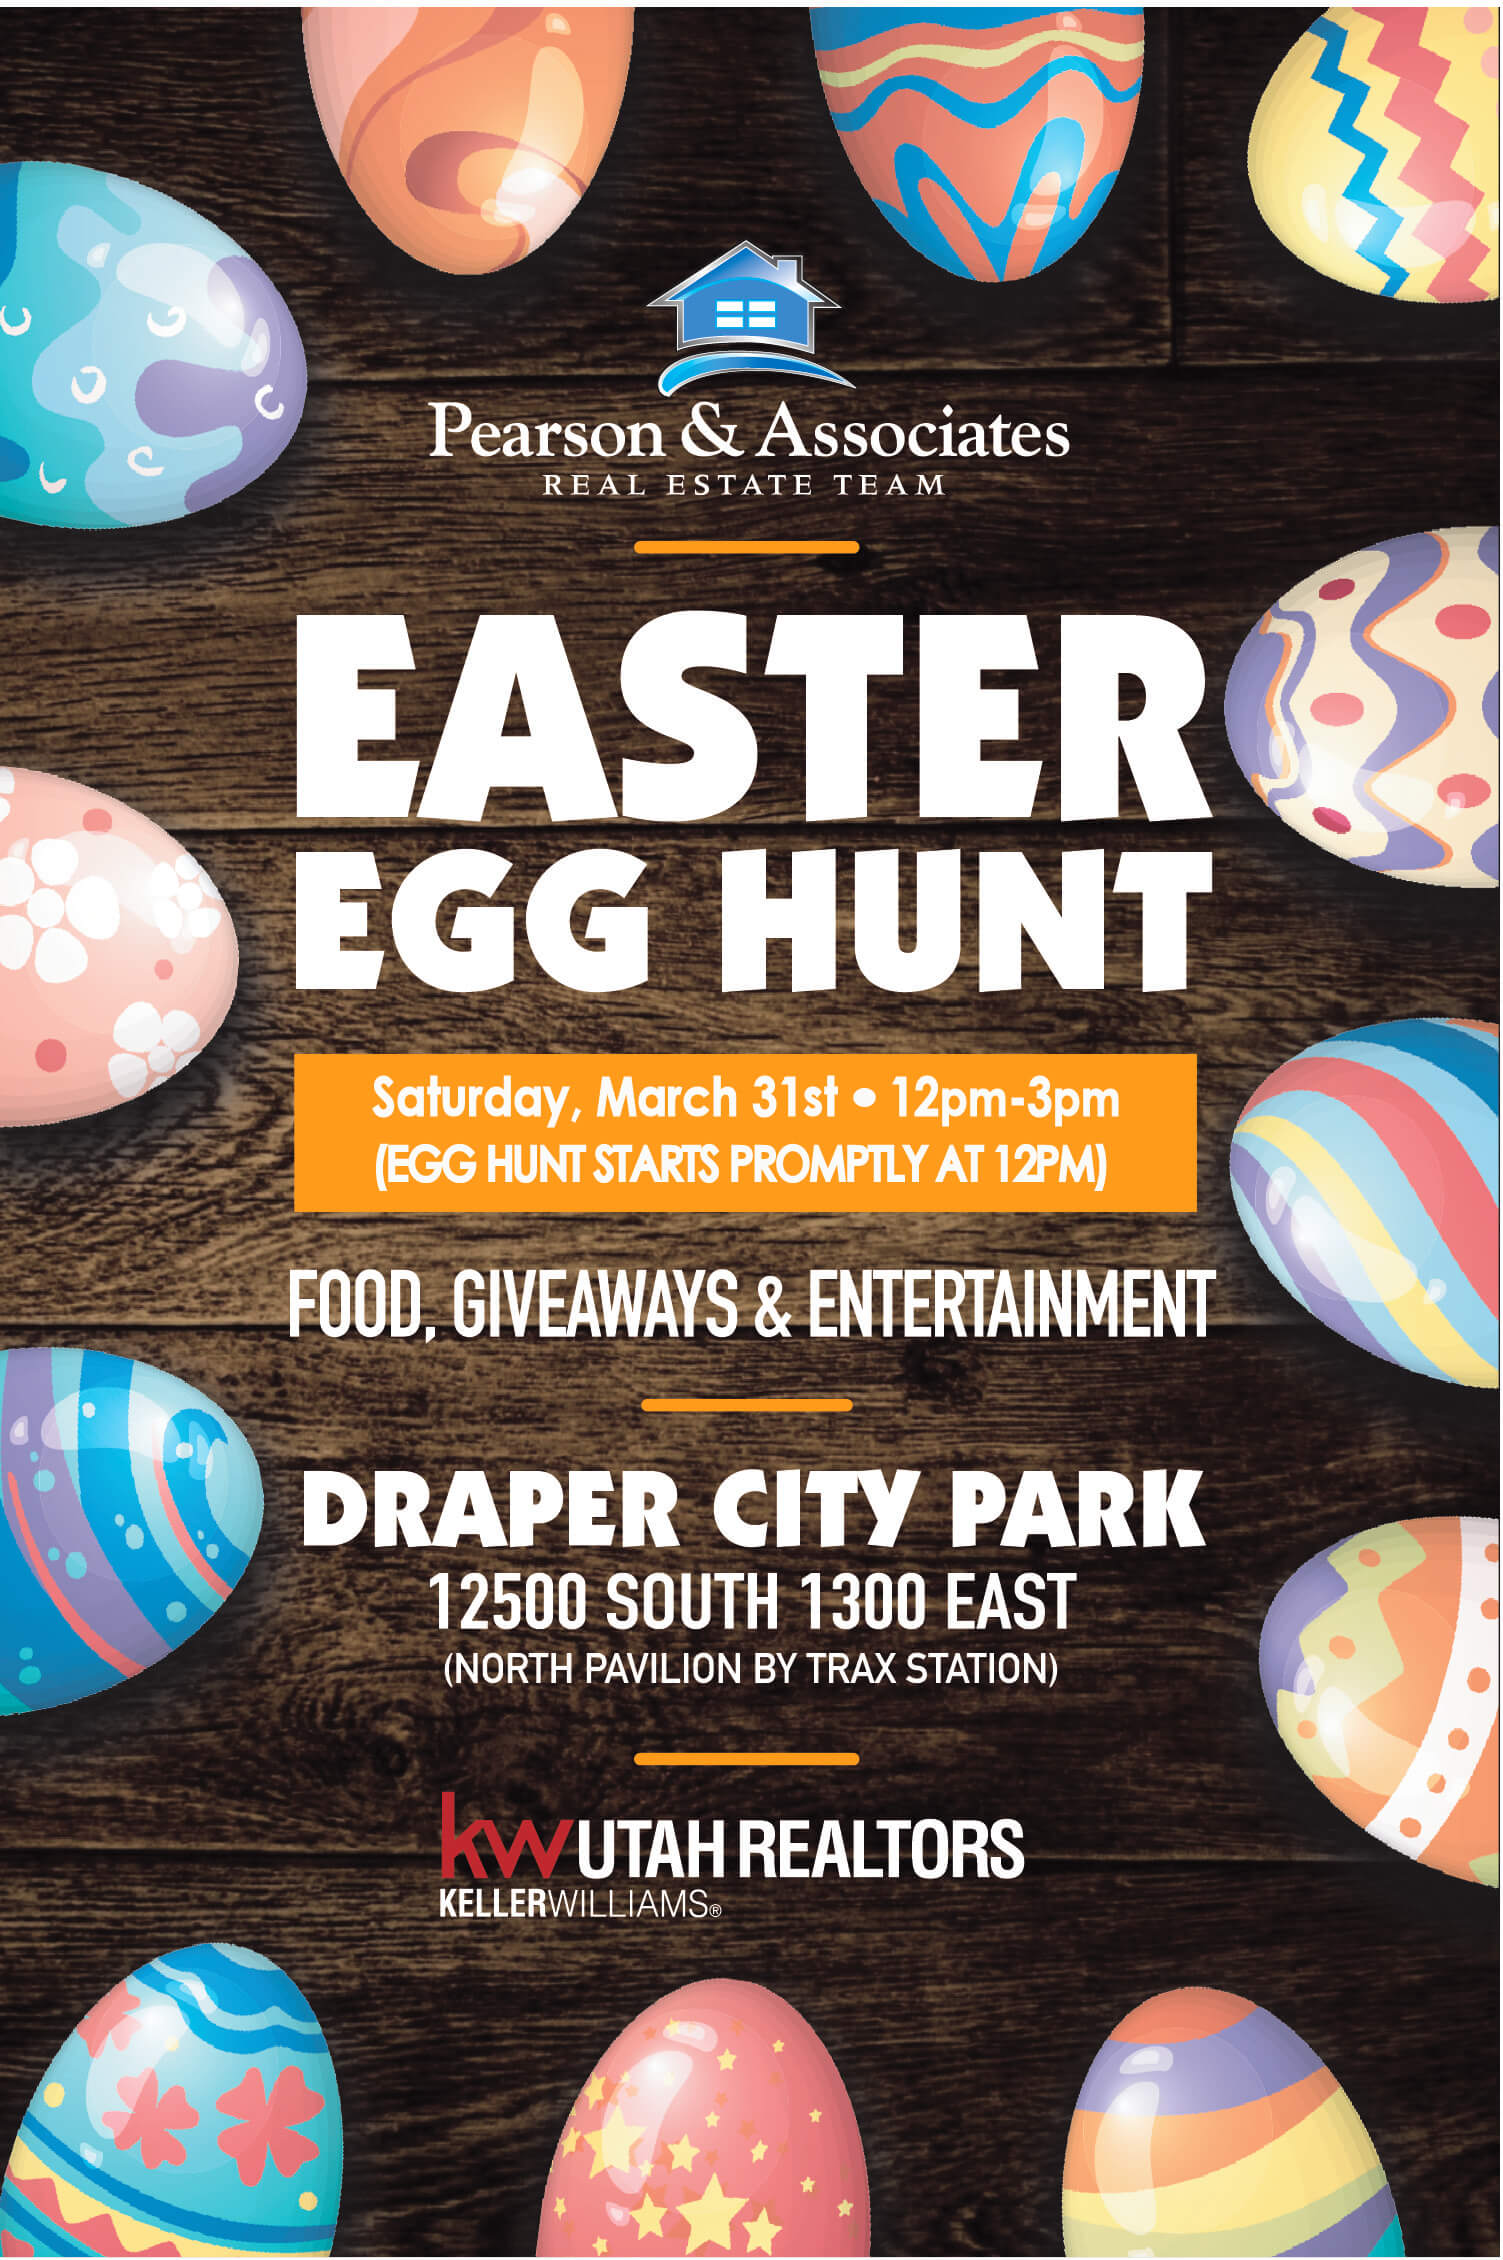 ANNUAL EASTER EGG HUNT ANNOUNCEMENT